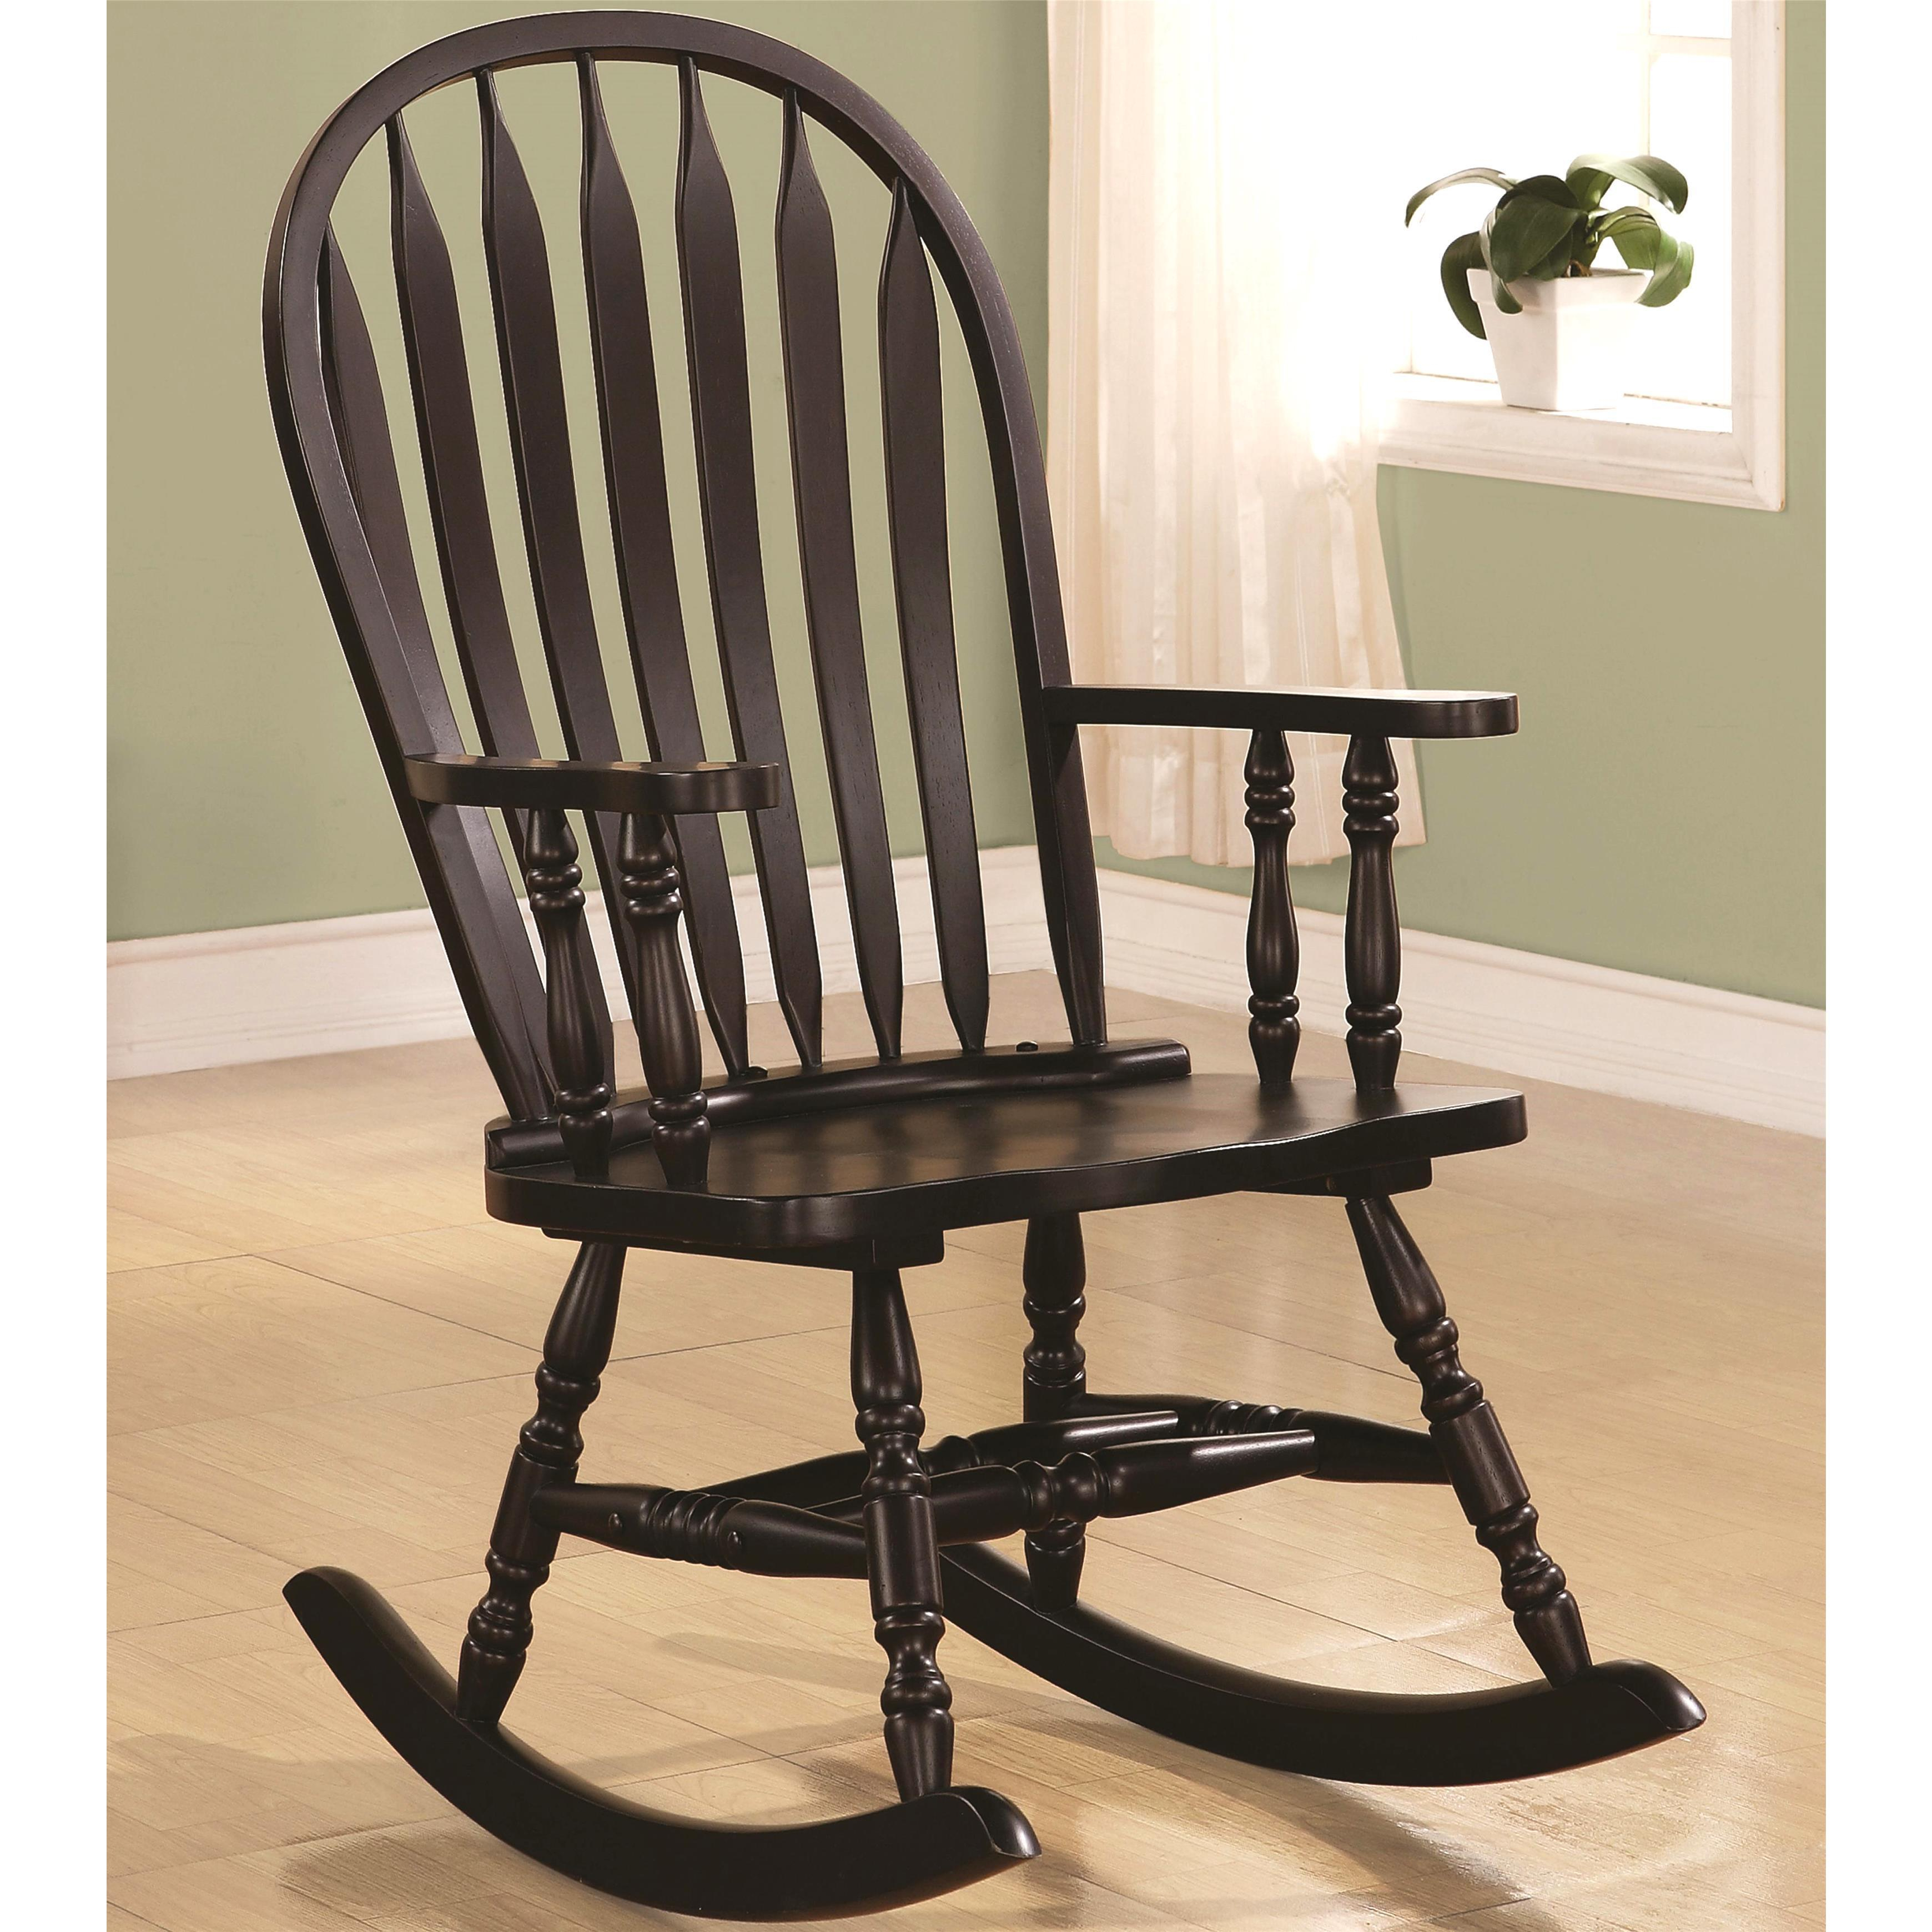 Balsam Windsor Arrow Back Rocking Chair With Regard To Ethel Country White Rocking Chairs (View 2 of 20)